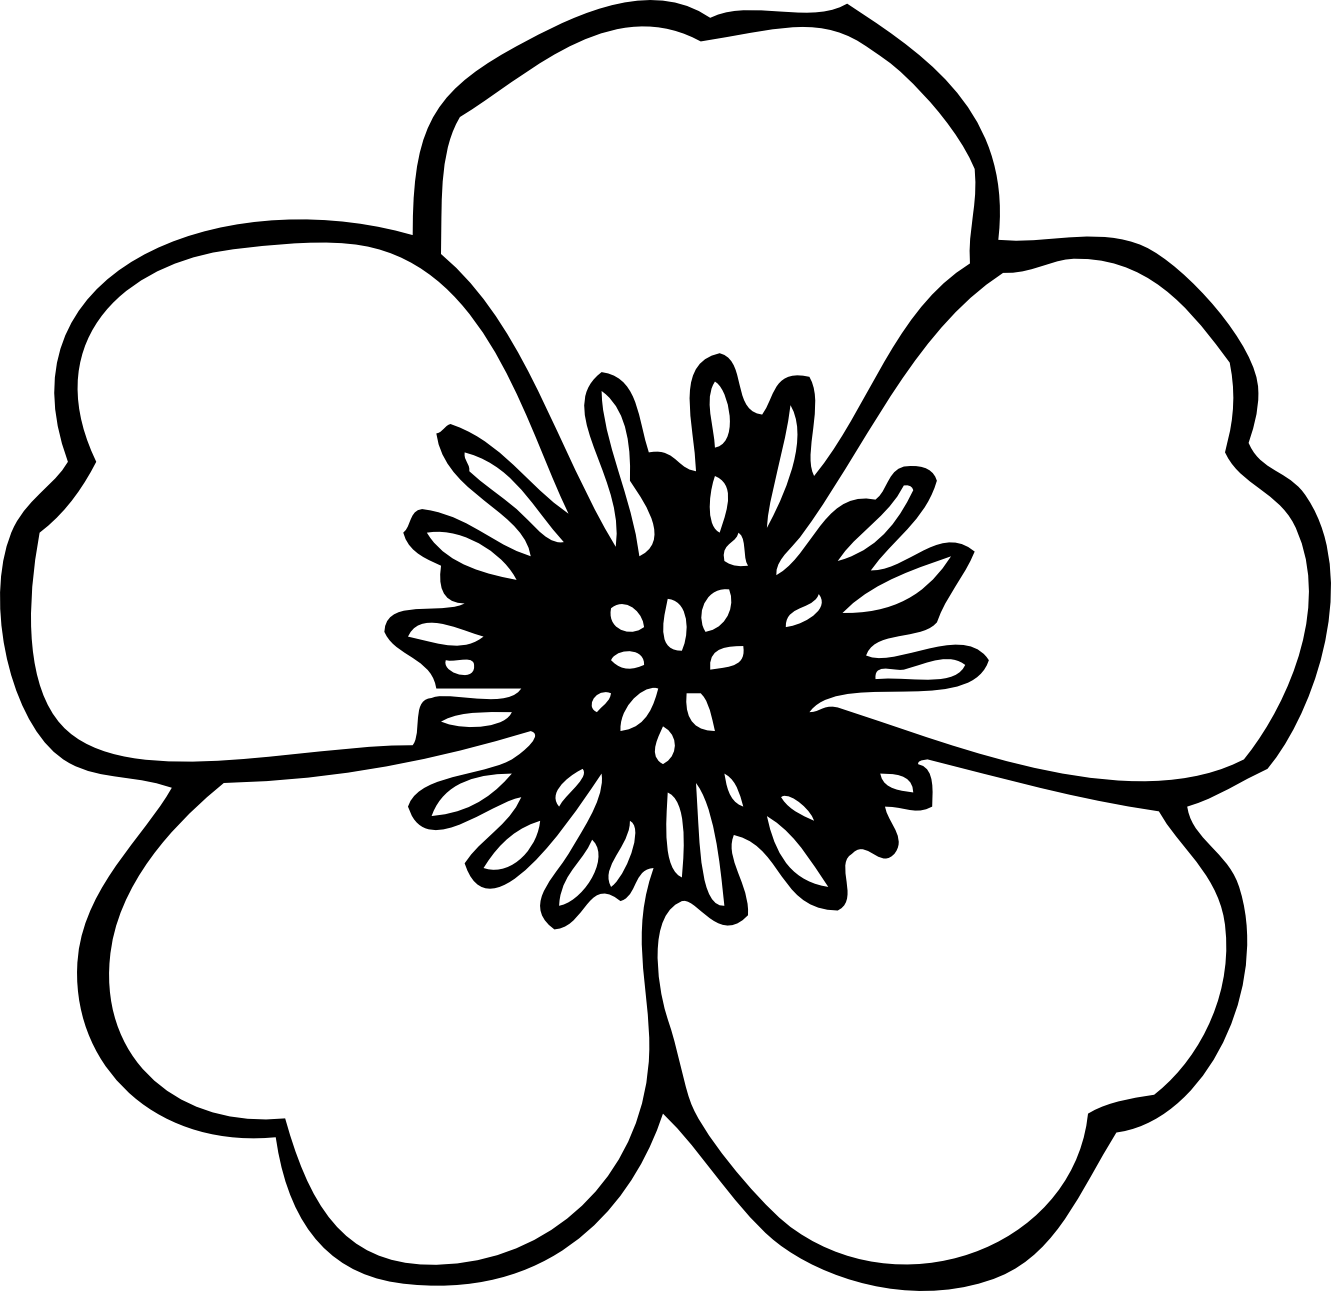 Simple black and . White flower clipart png